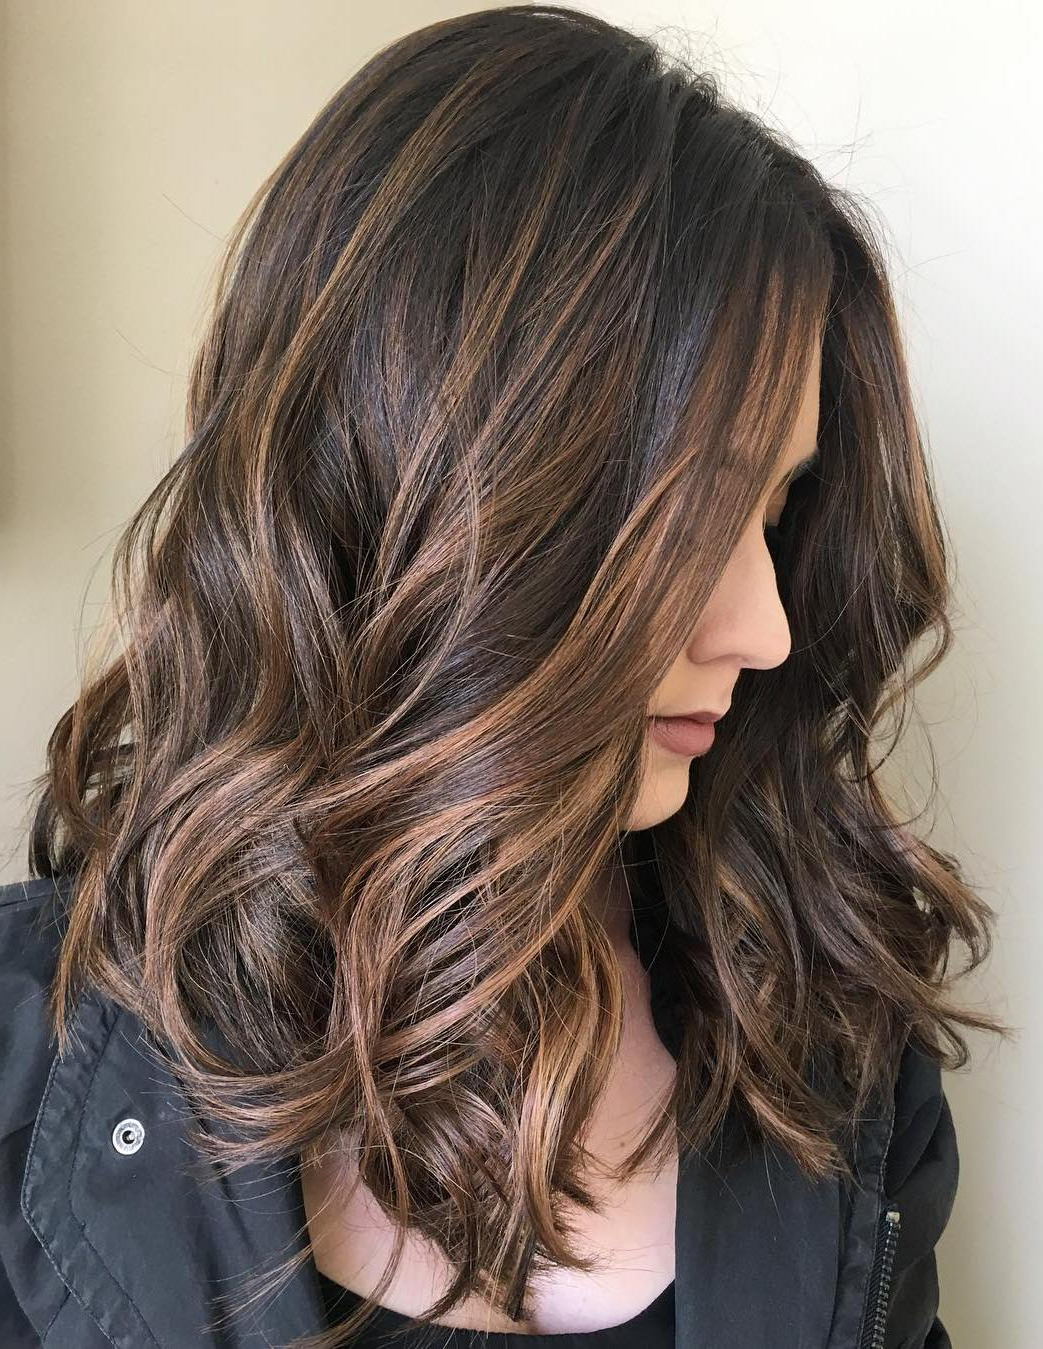 70 Balayage Hair Color Ideas With Blonde, Brown And Caramel Highlights In Short Bob Hairstyles With Dimensional Coloring (View 15 of 20)